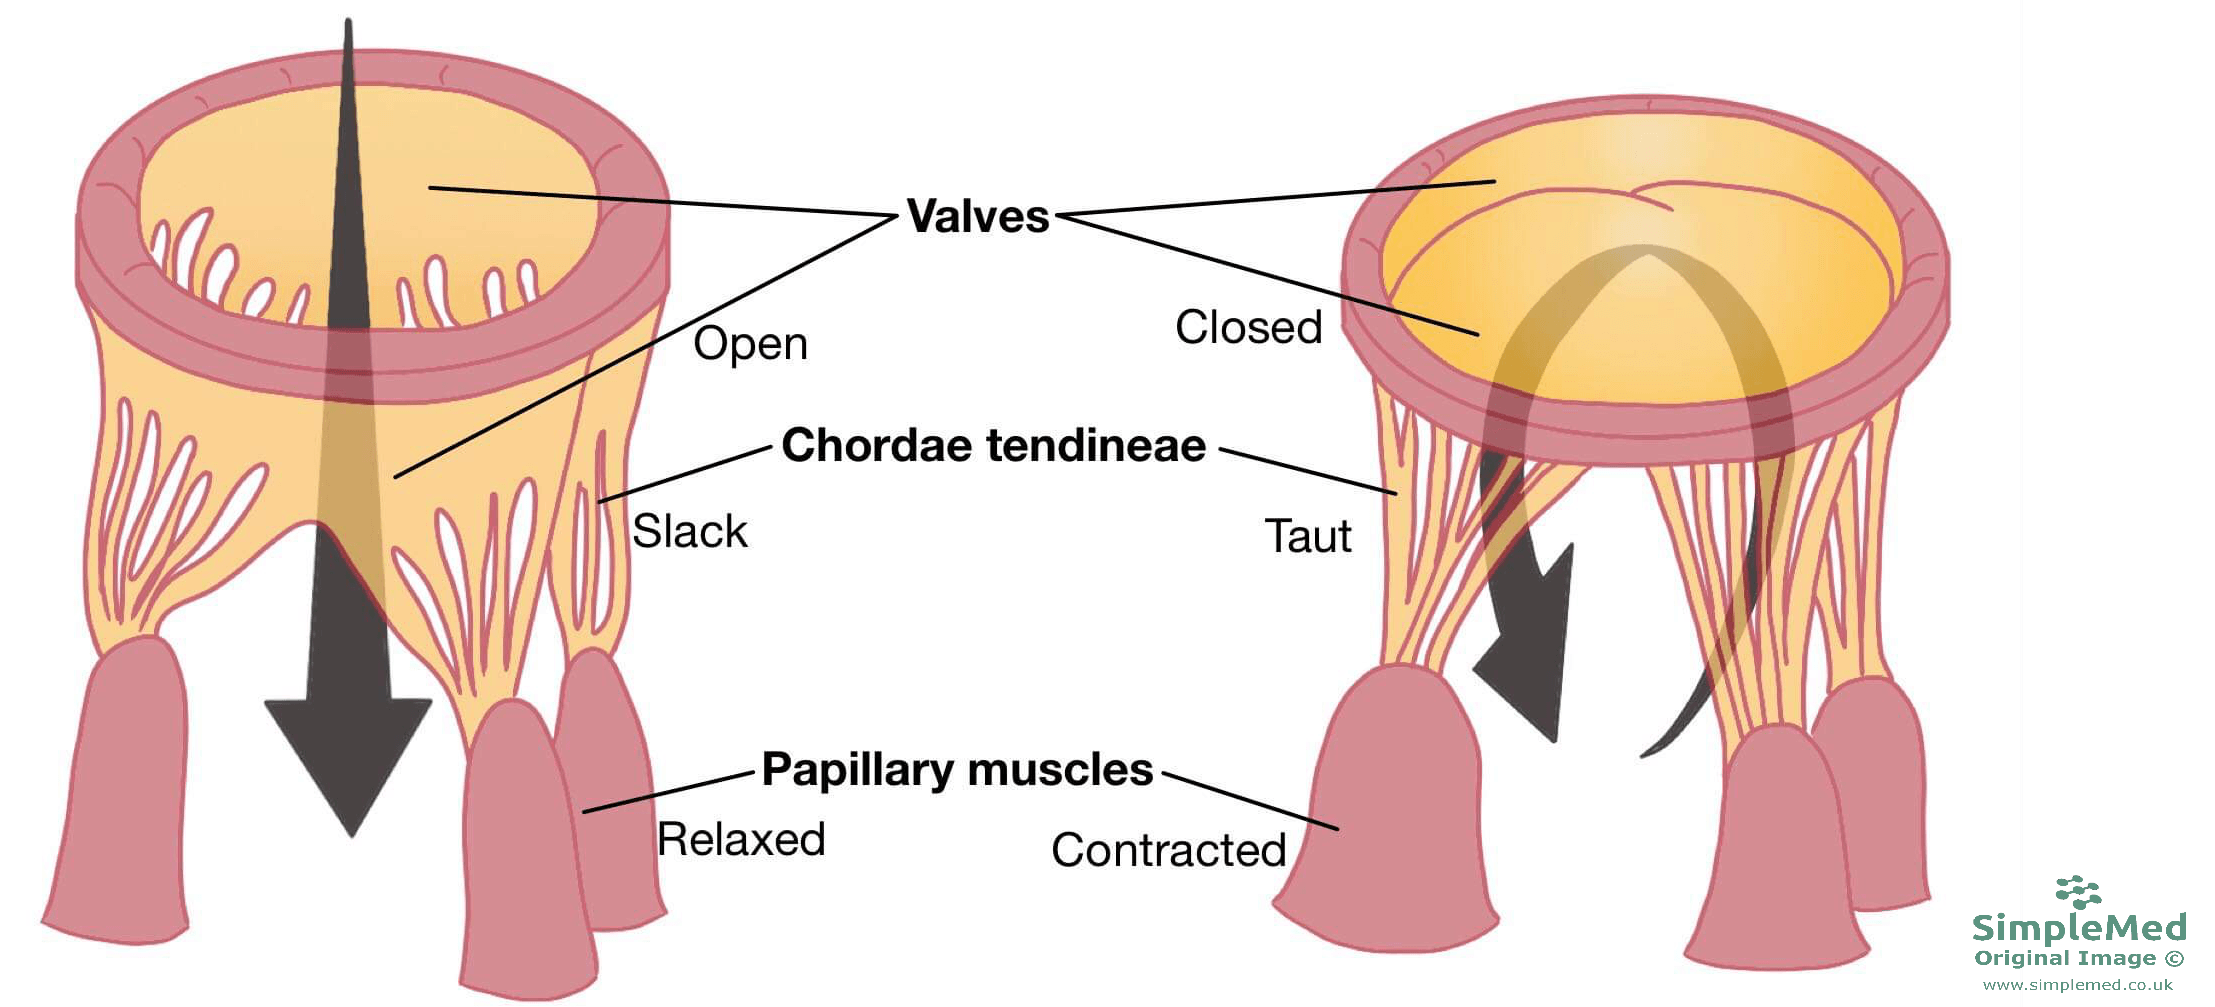 Valves of the Heart and chordae tendineae SimpleMed